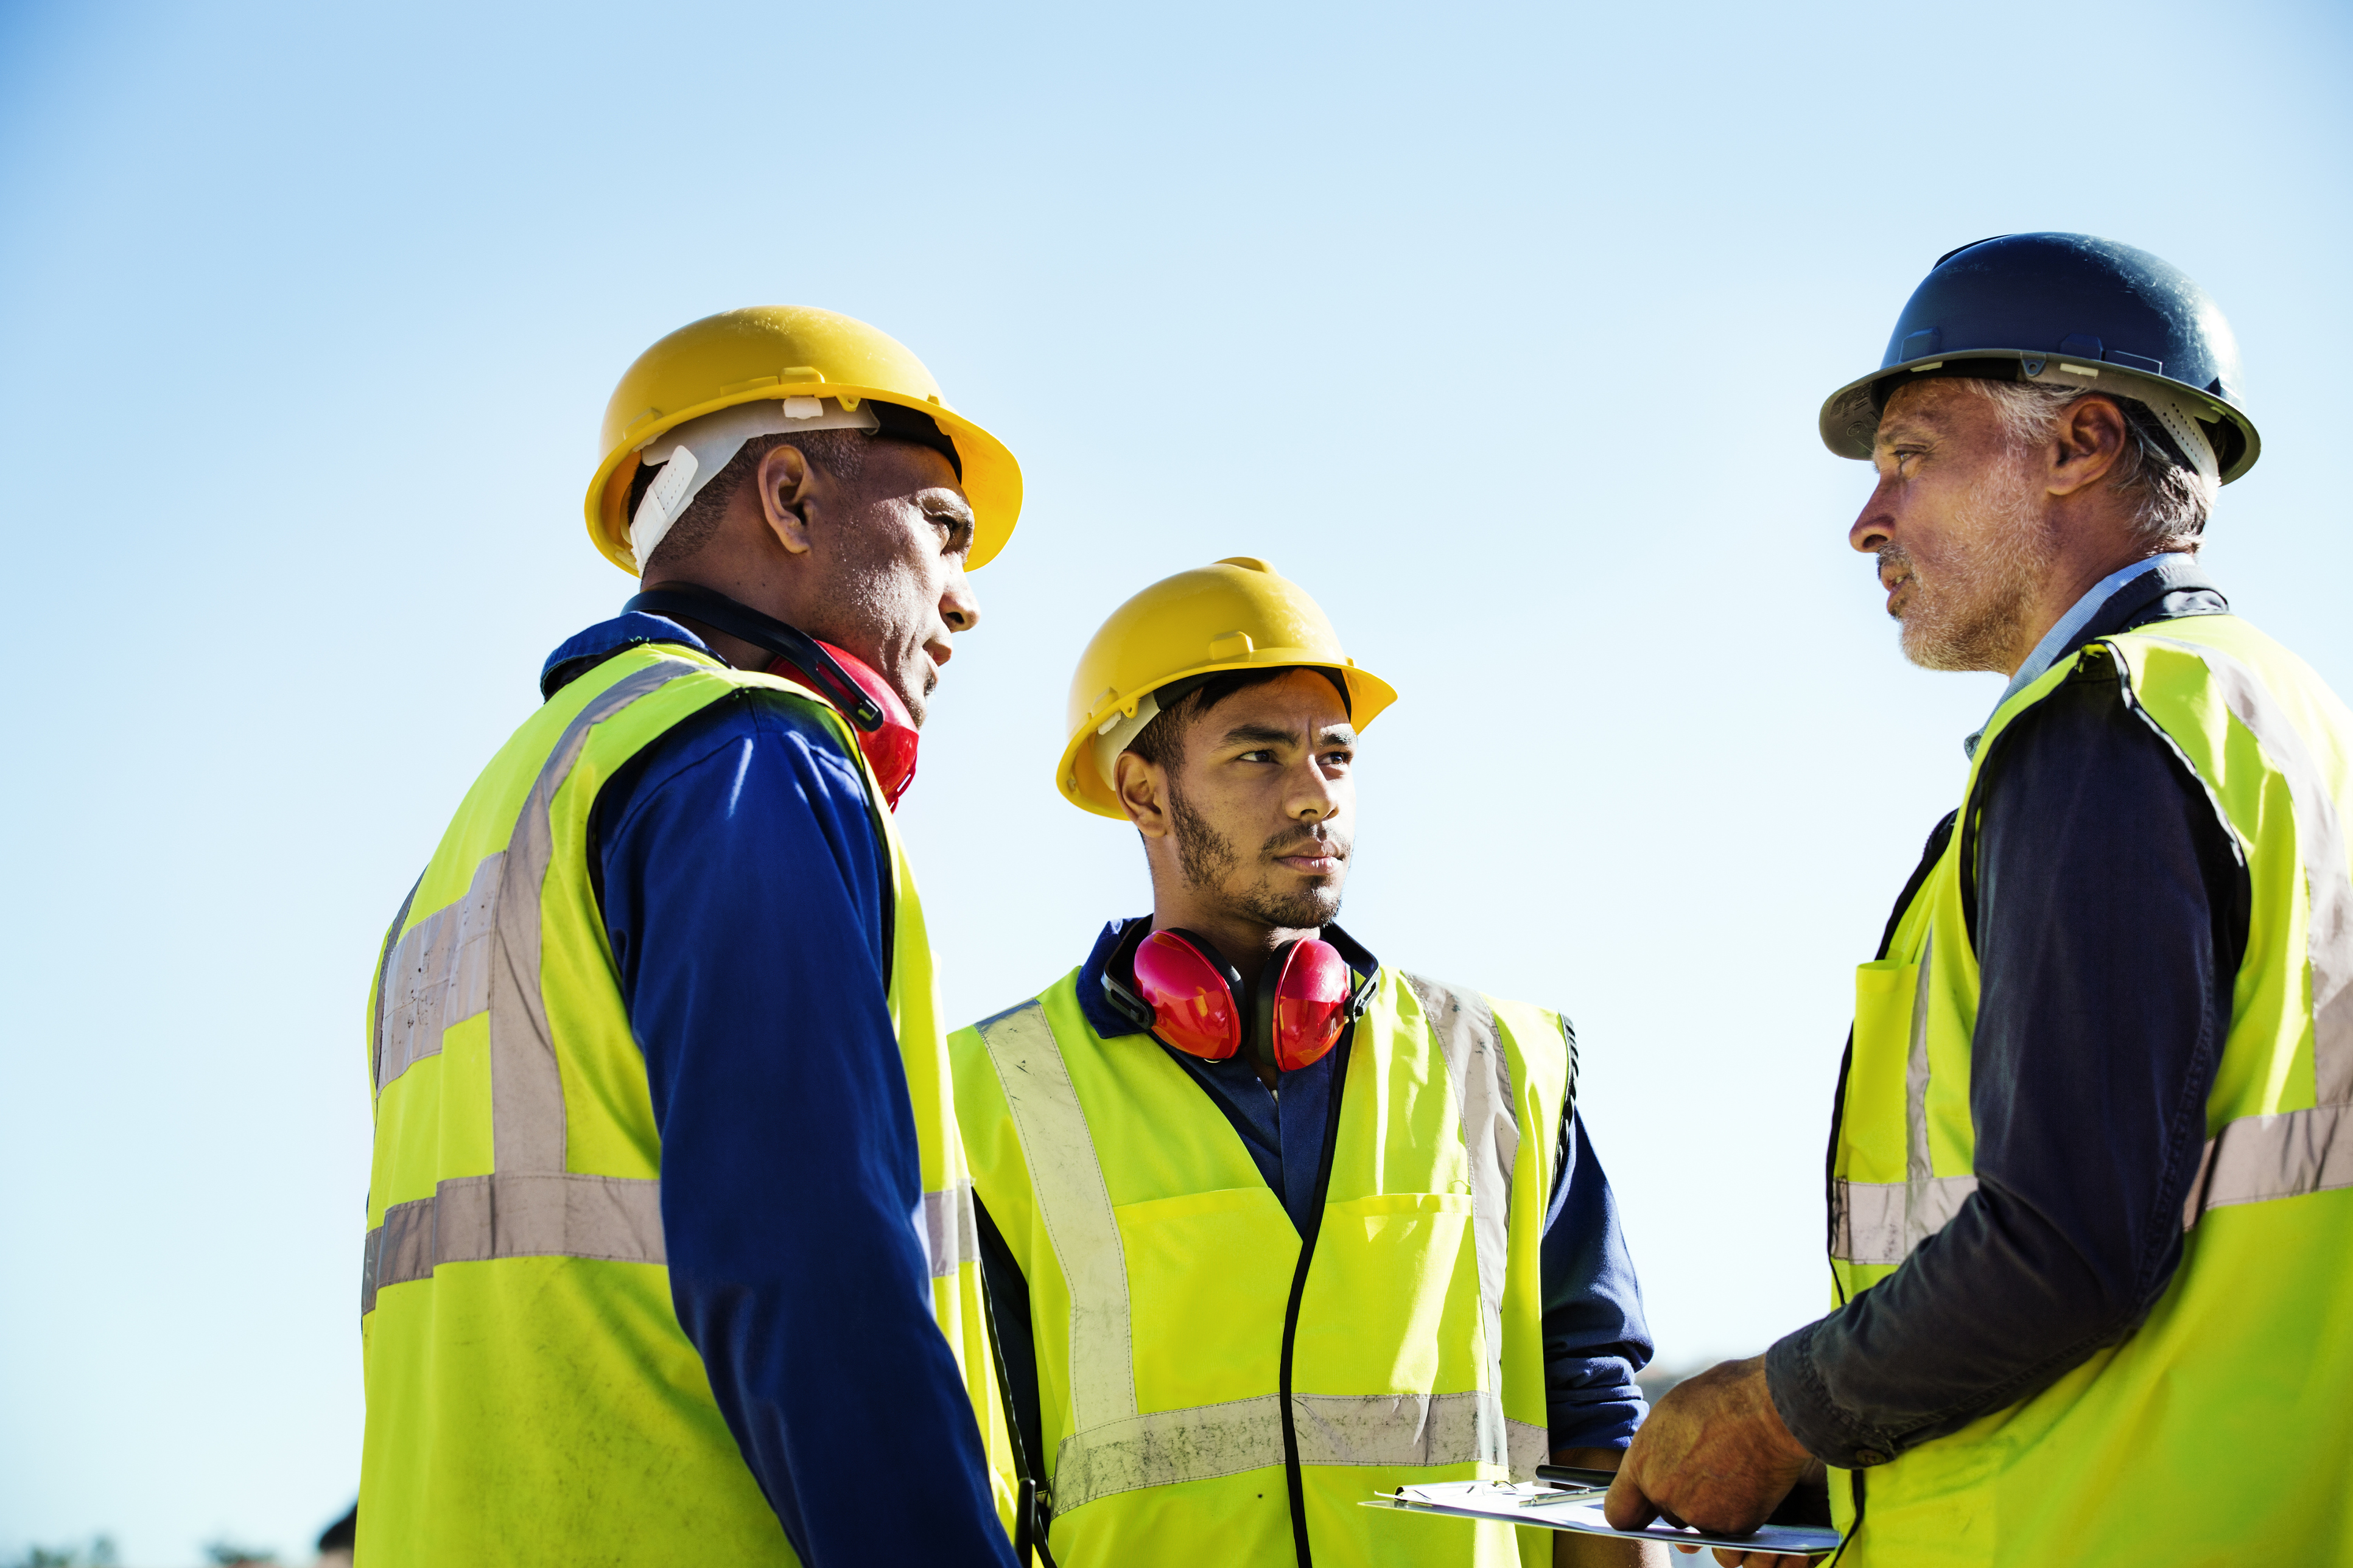 Architect-discussing-with-quarry-workers-551349559_3869x2580-1